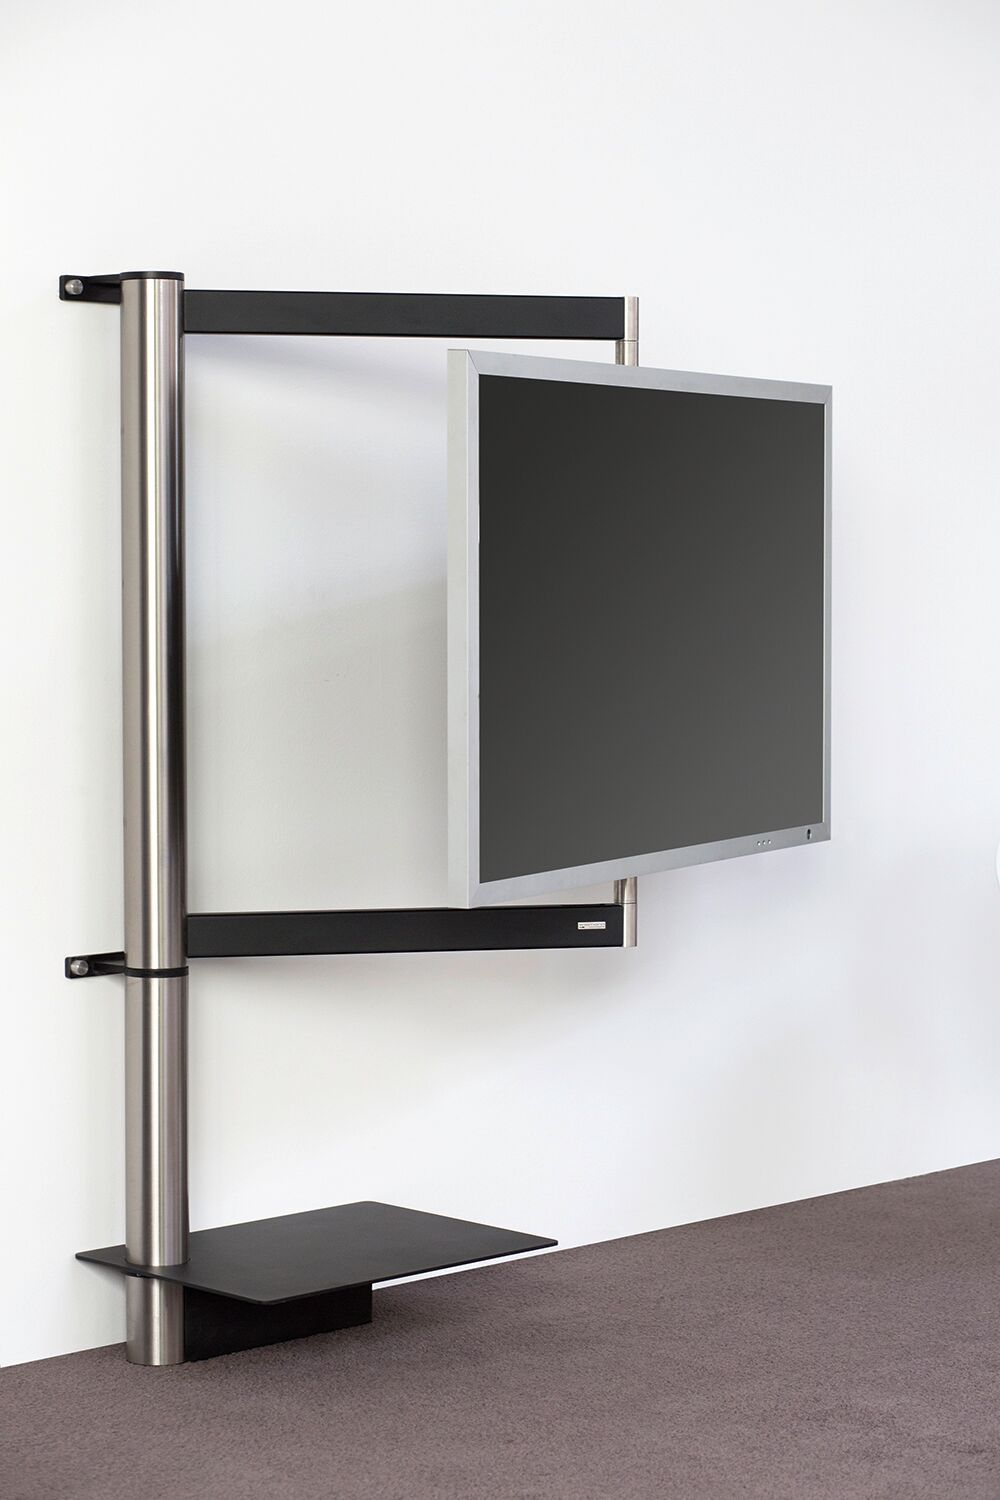 Fernseher Halterung Tv Mount Stand Swivel Function For Perfect View From Any Place